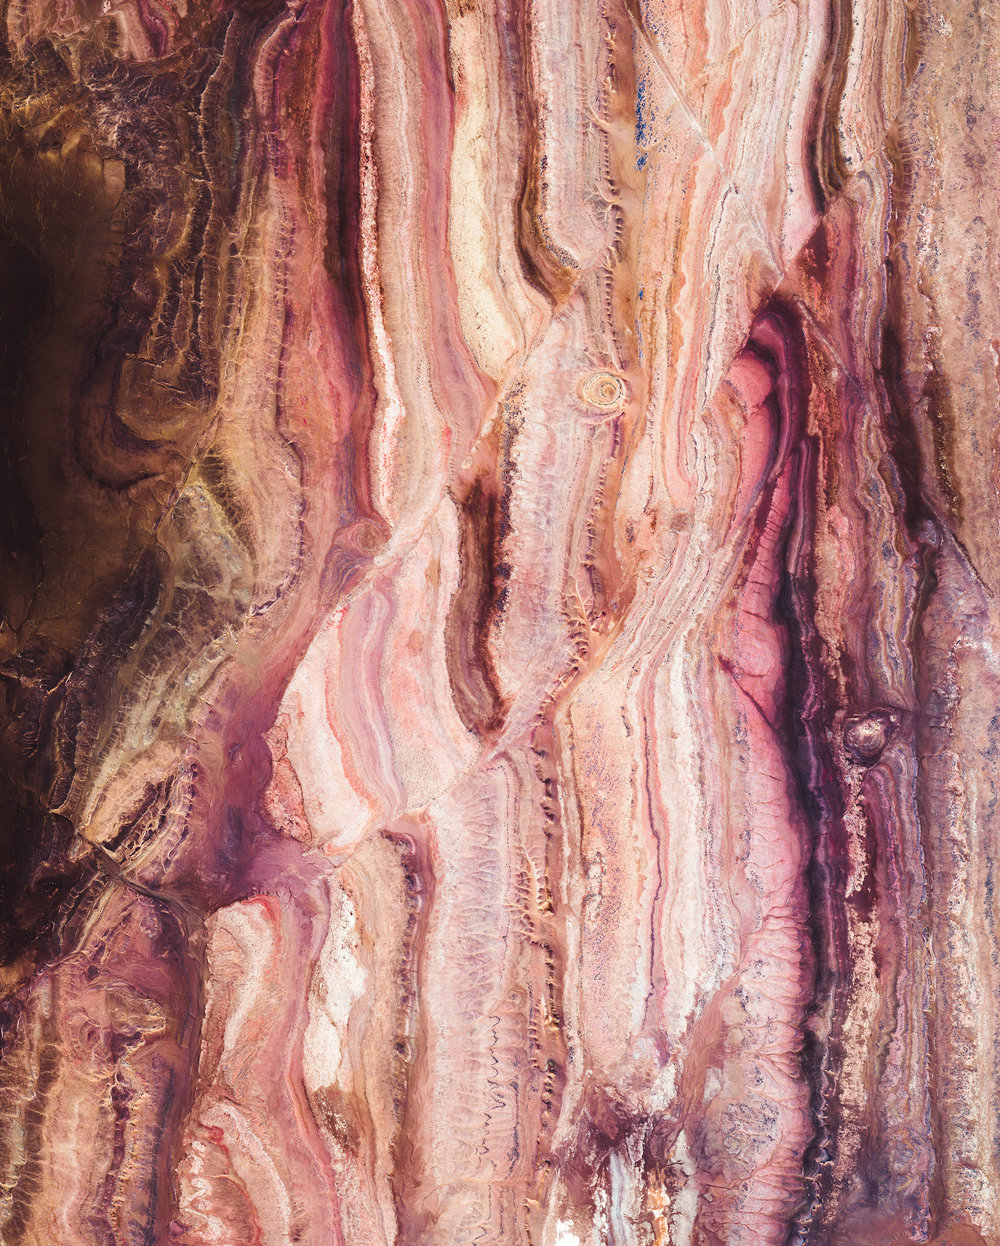 """This Overview shows colorful rock formations in the Sahara Desert, west of the town of Reggane, Algeria. The climate in this region is torrid and almost rainless, with an average annual rainfall of less than 0.4 inches (10 mm). In the summer, daytime temperatures are known to consistently reach 122°F (50°C), earning this area its nickname — the """"triangle of fire.""""  25°11'32.6""""N 3°23'21.3""""W  Source imagery: Maxar Technologies"""